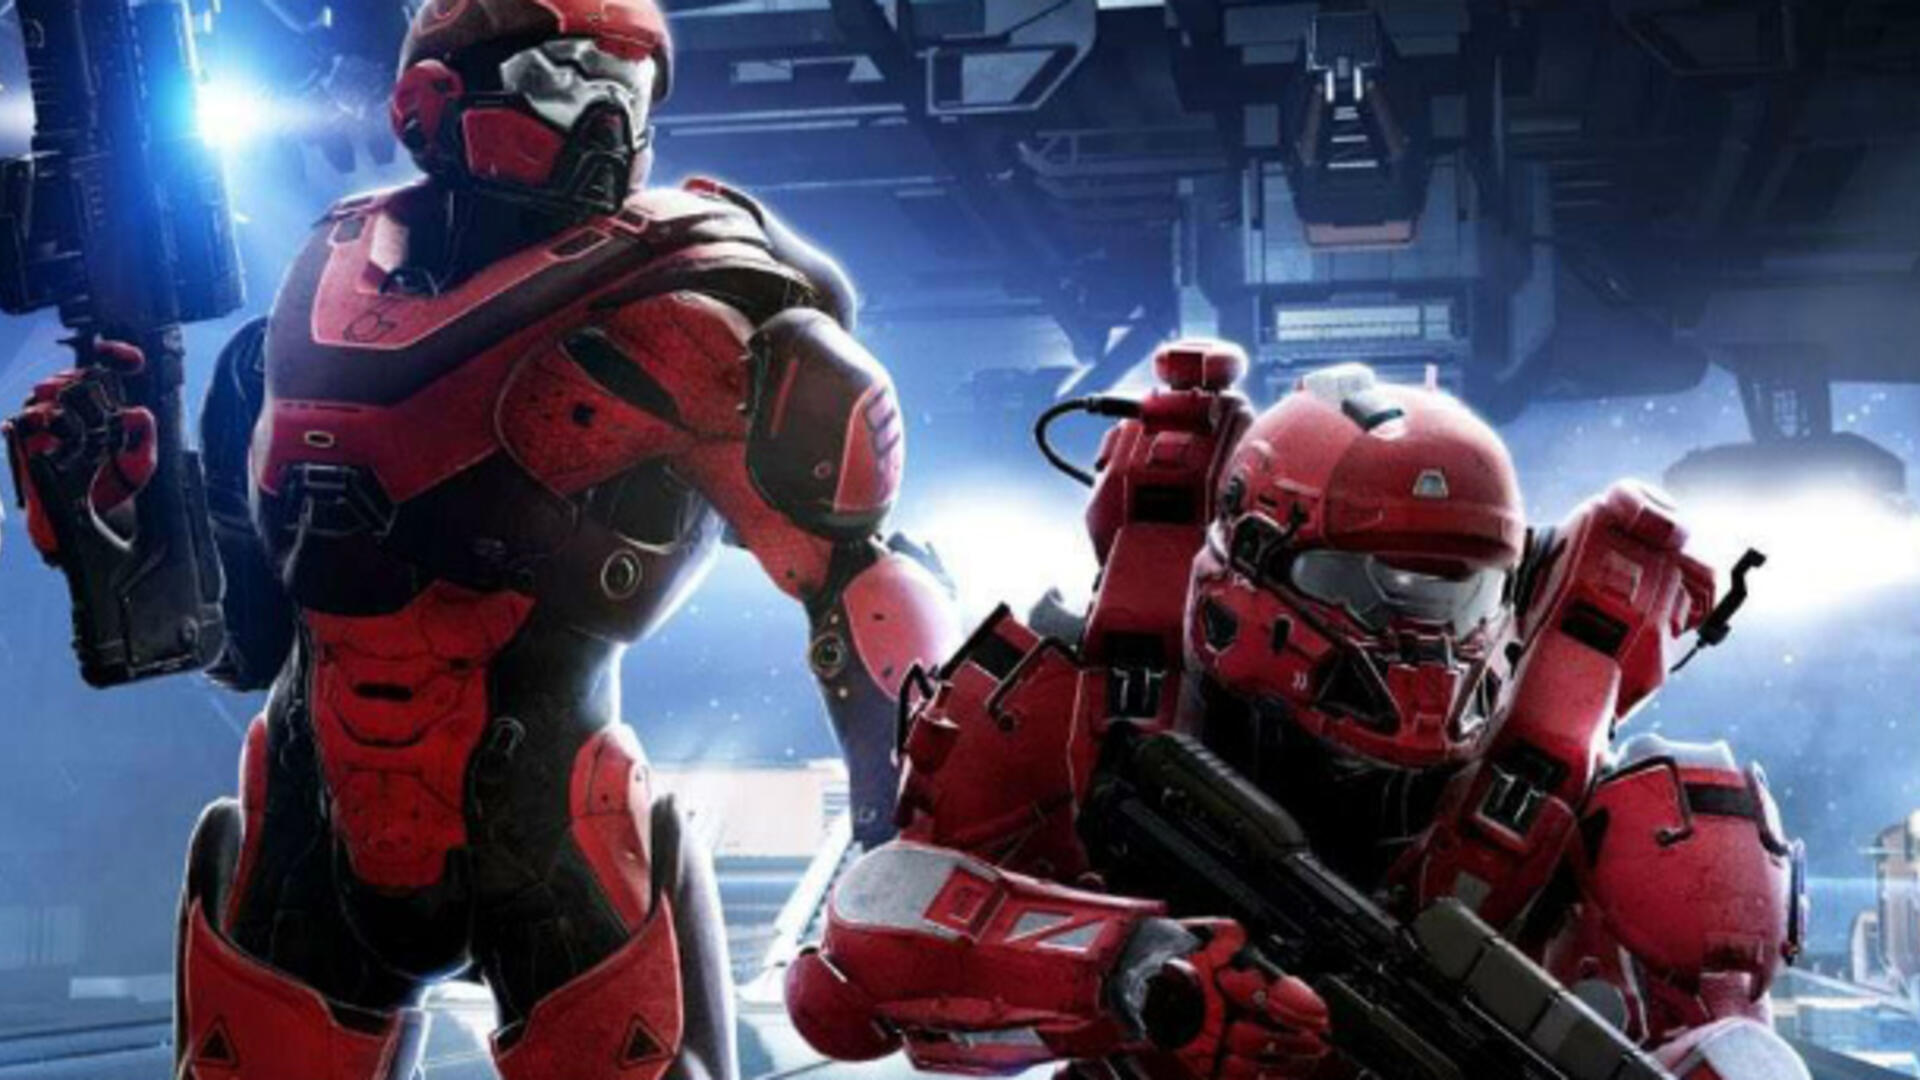 Halo 5 The Master Chief Collection And Halo Wars 2 Getting Xbox